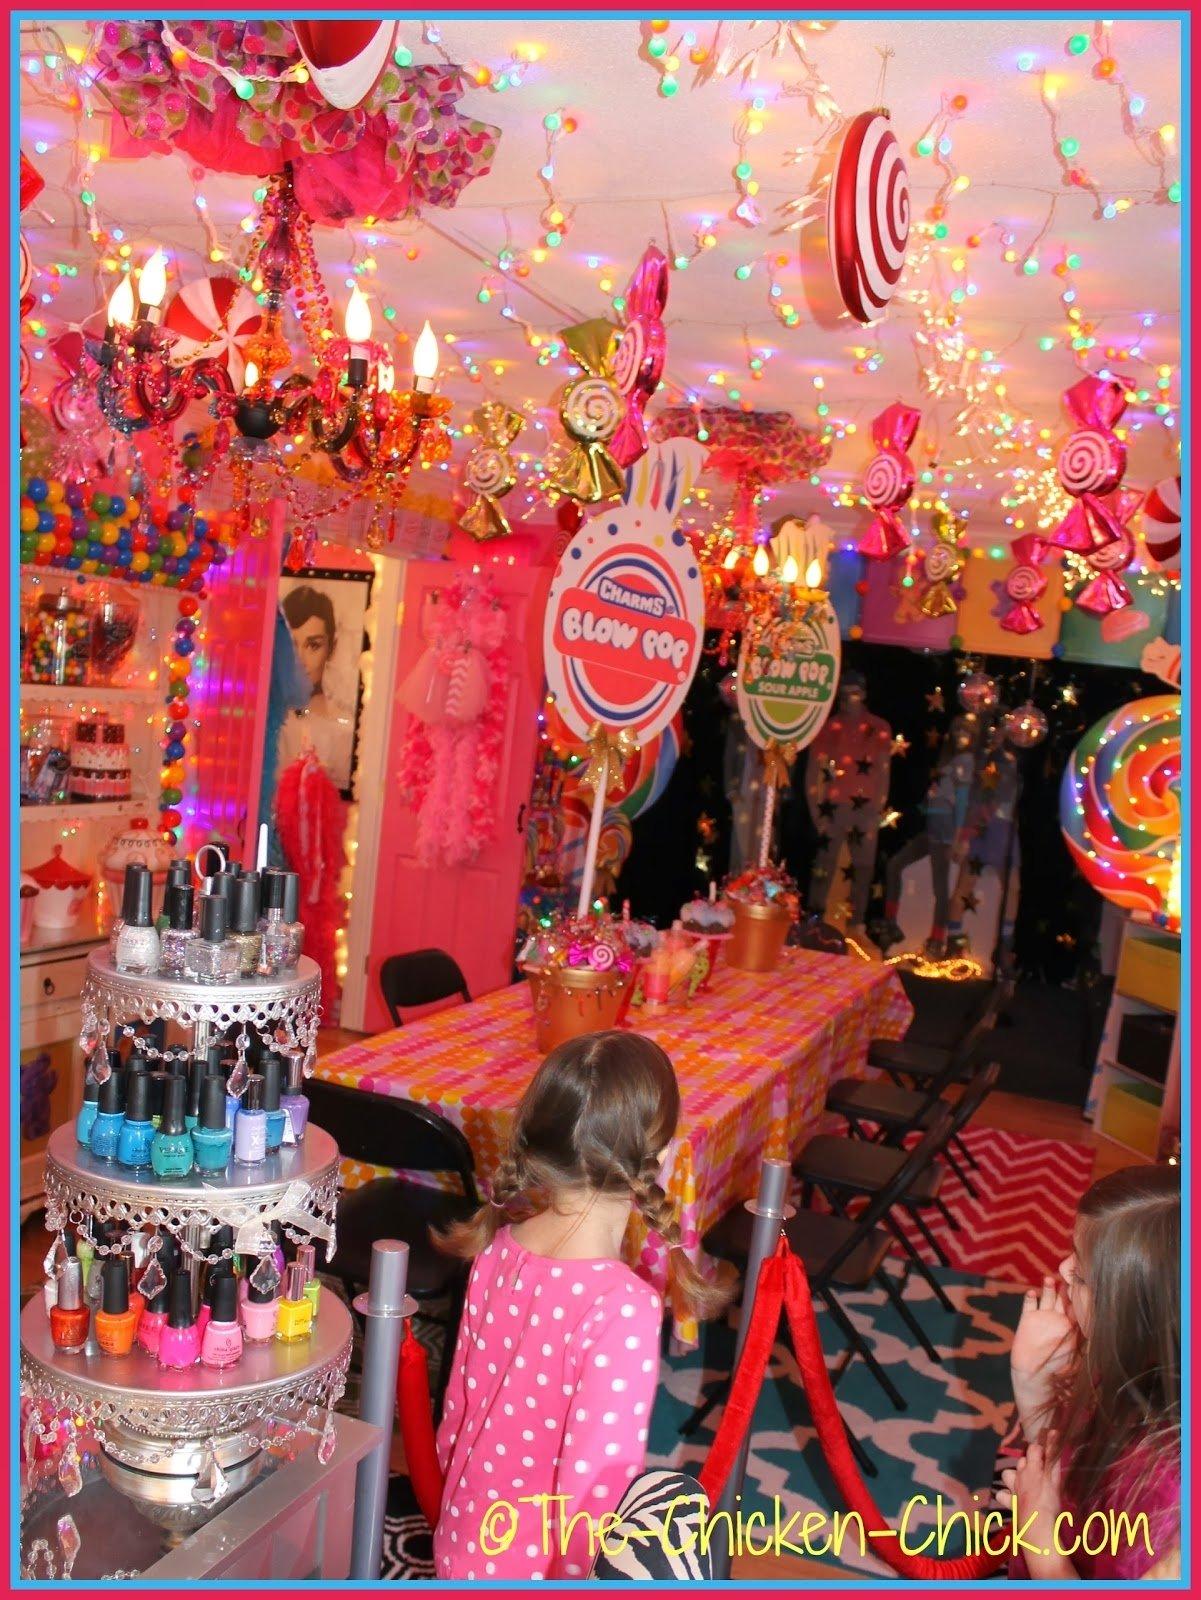 10 Ideal Birthday Party Ideas For 10 Year Olds spa birthday party ideas for 7 year olds pool design ideas 10